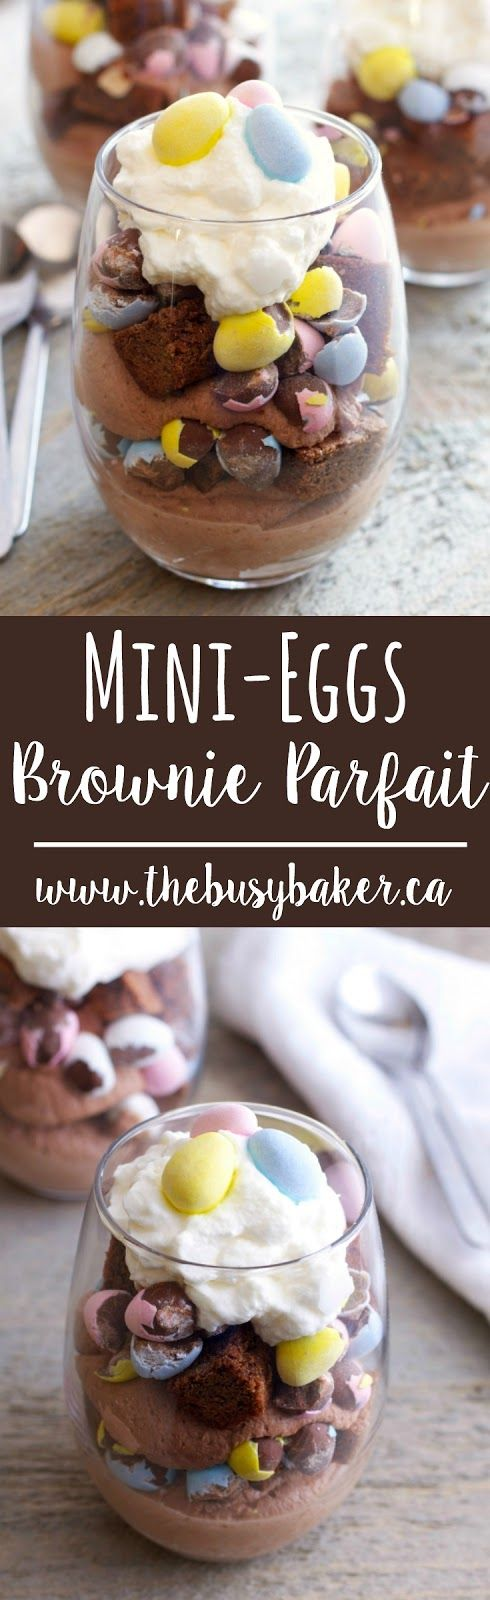 These Mini Eggs Easter Brownie Parfaits are the easiest Easter dessert! Made with everyone's favorite candy-coated Easter eggs, fudgy brownies and cream!